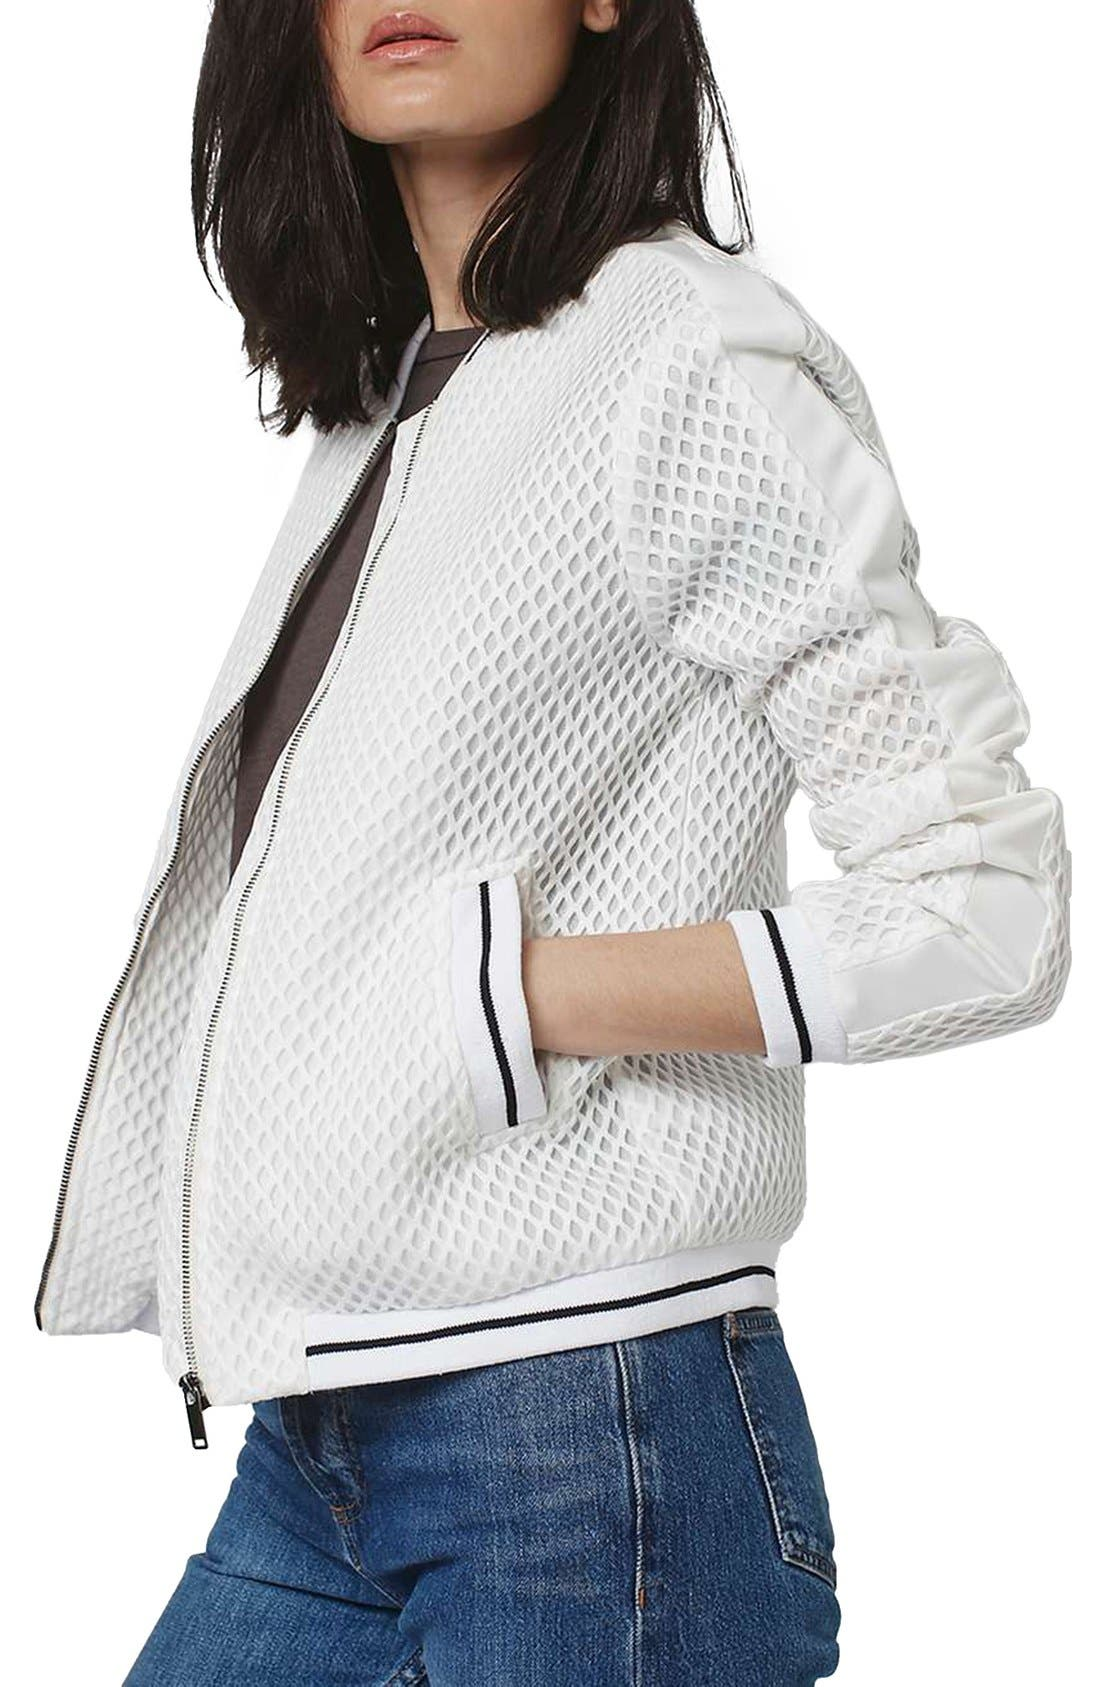 Diamond Airtex Bomber Jacket,                             Main thumbnail 1, color,                             900